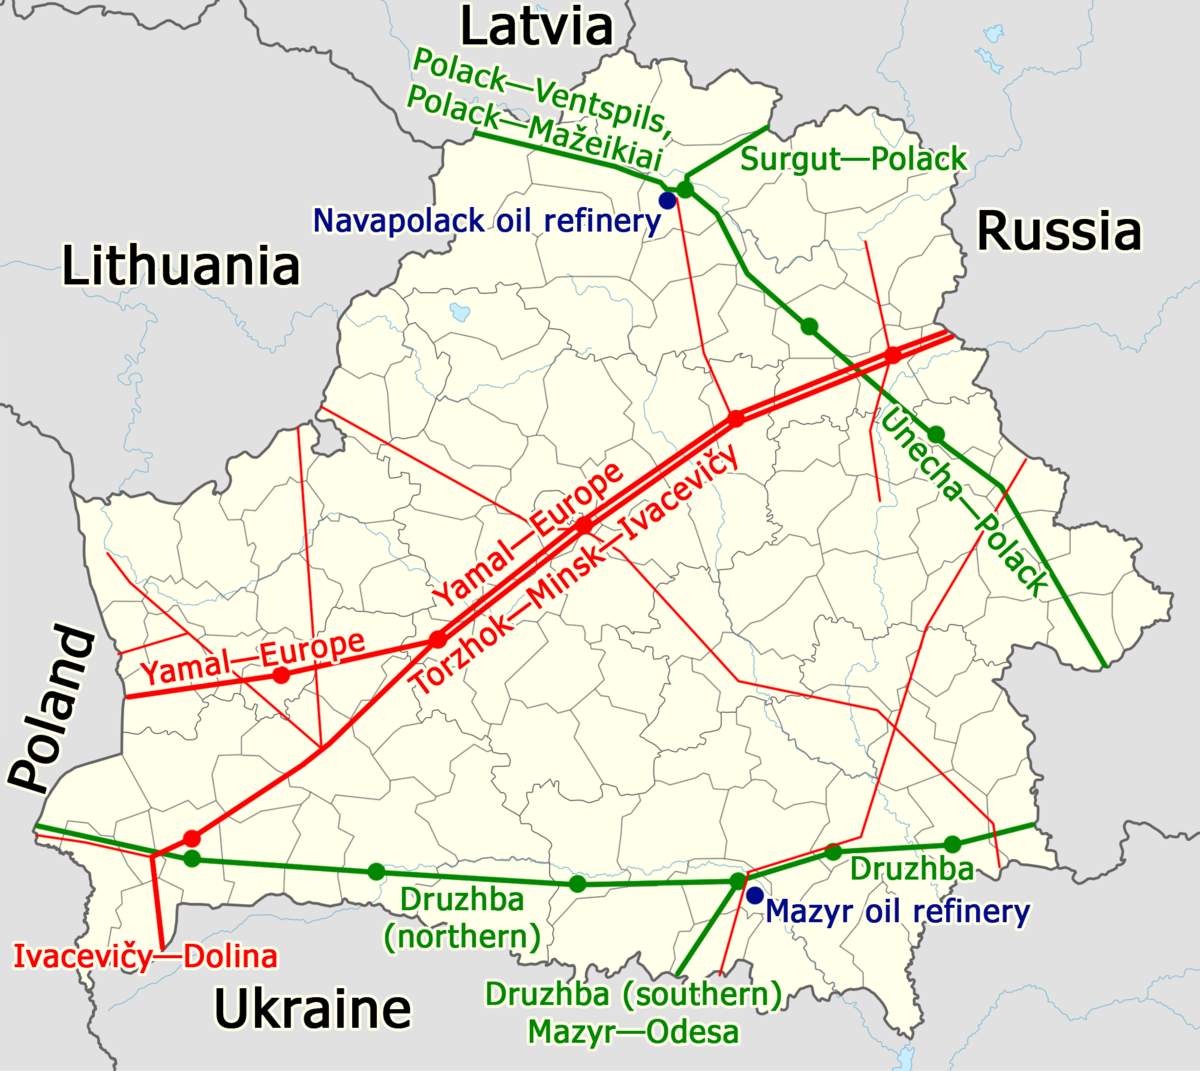 https://upload.wikimedia.org/wikipedia/commons/thumb/c/c7/Major_gas_and_oil_pipelines_in_Belarus.png/1200px-Major_gas_and_oil_pipelines_in_Belarus.png